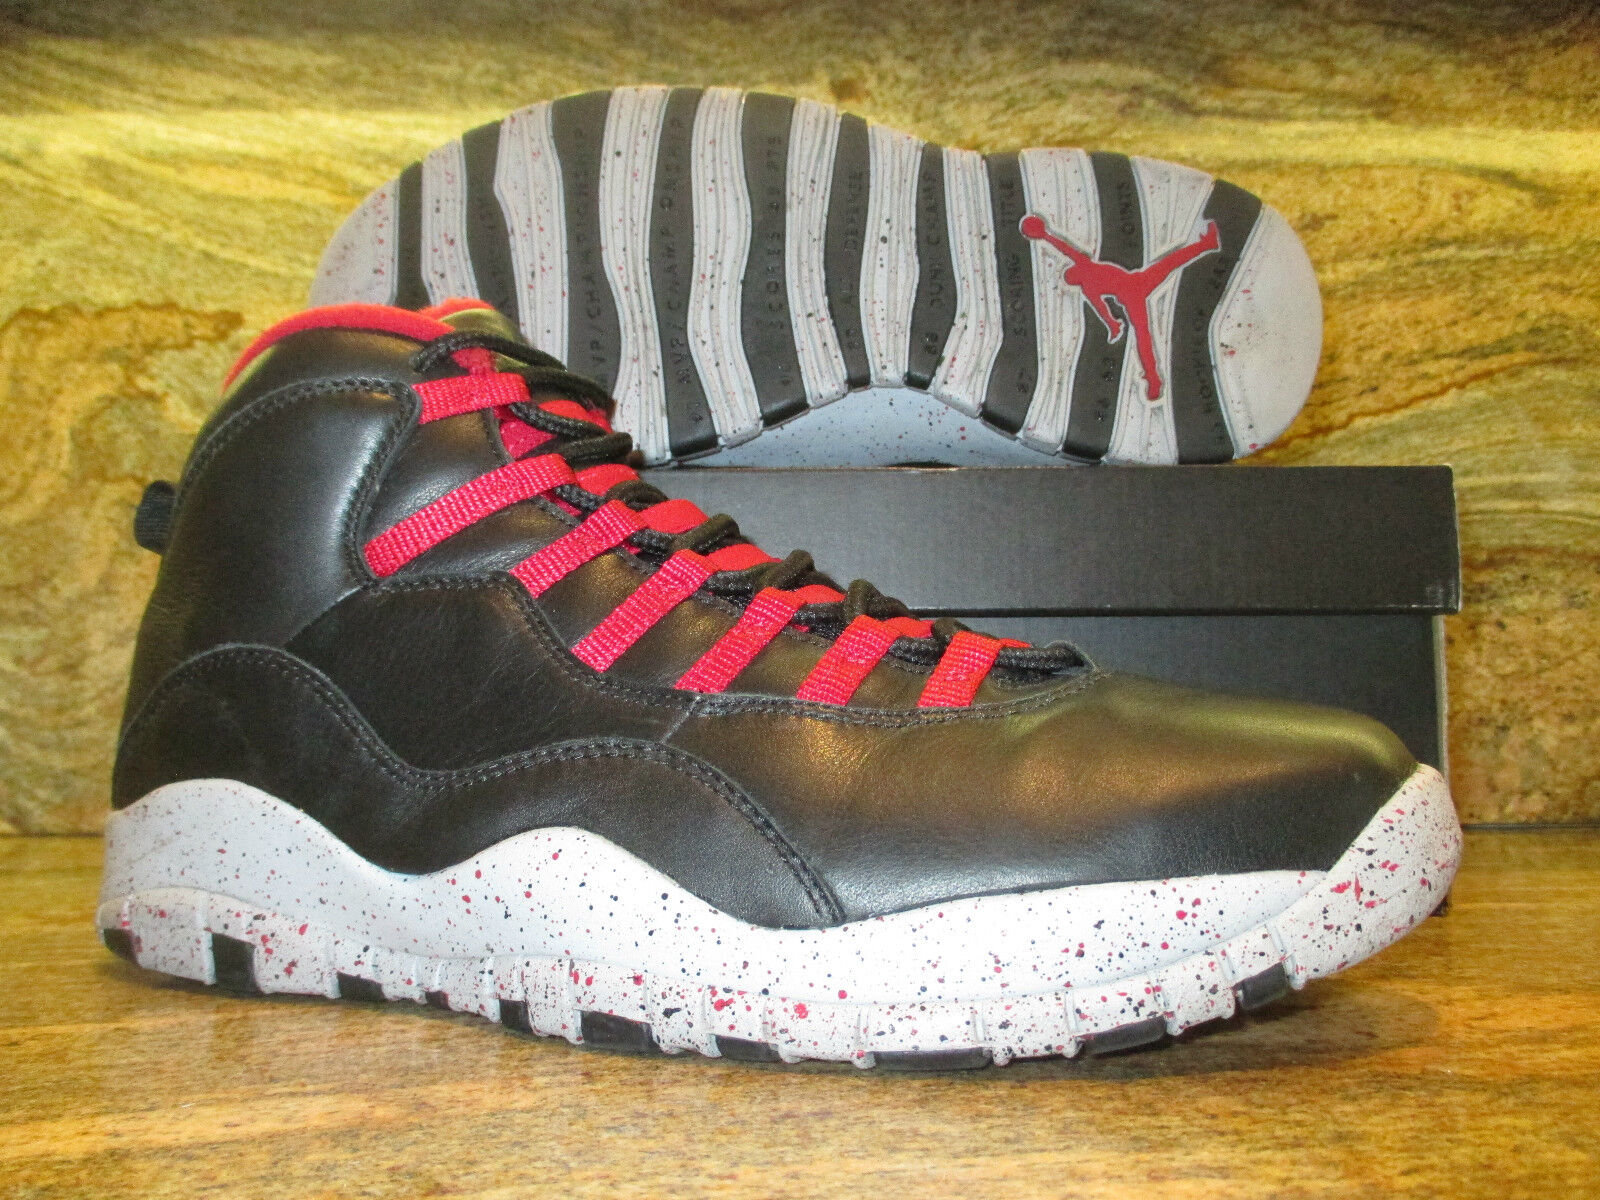 Nike Air Jordan 10 X Retro Promo Sample SZ 11 PSNY Black Public School FNF PE